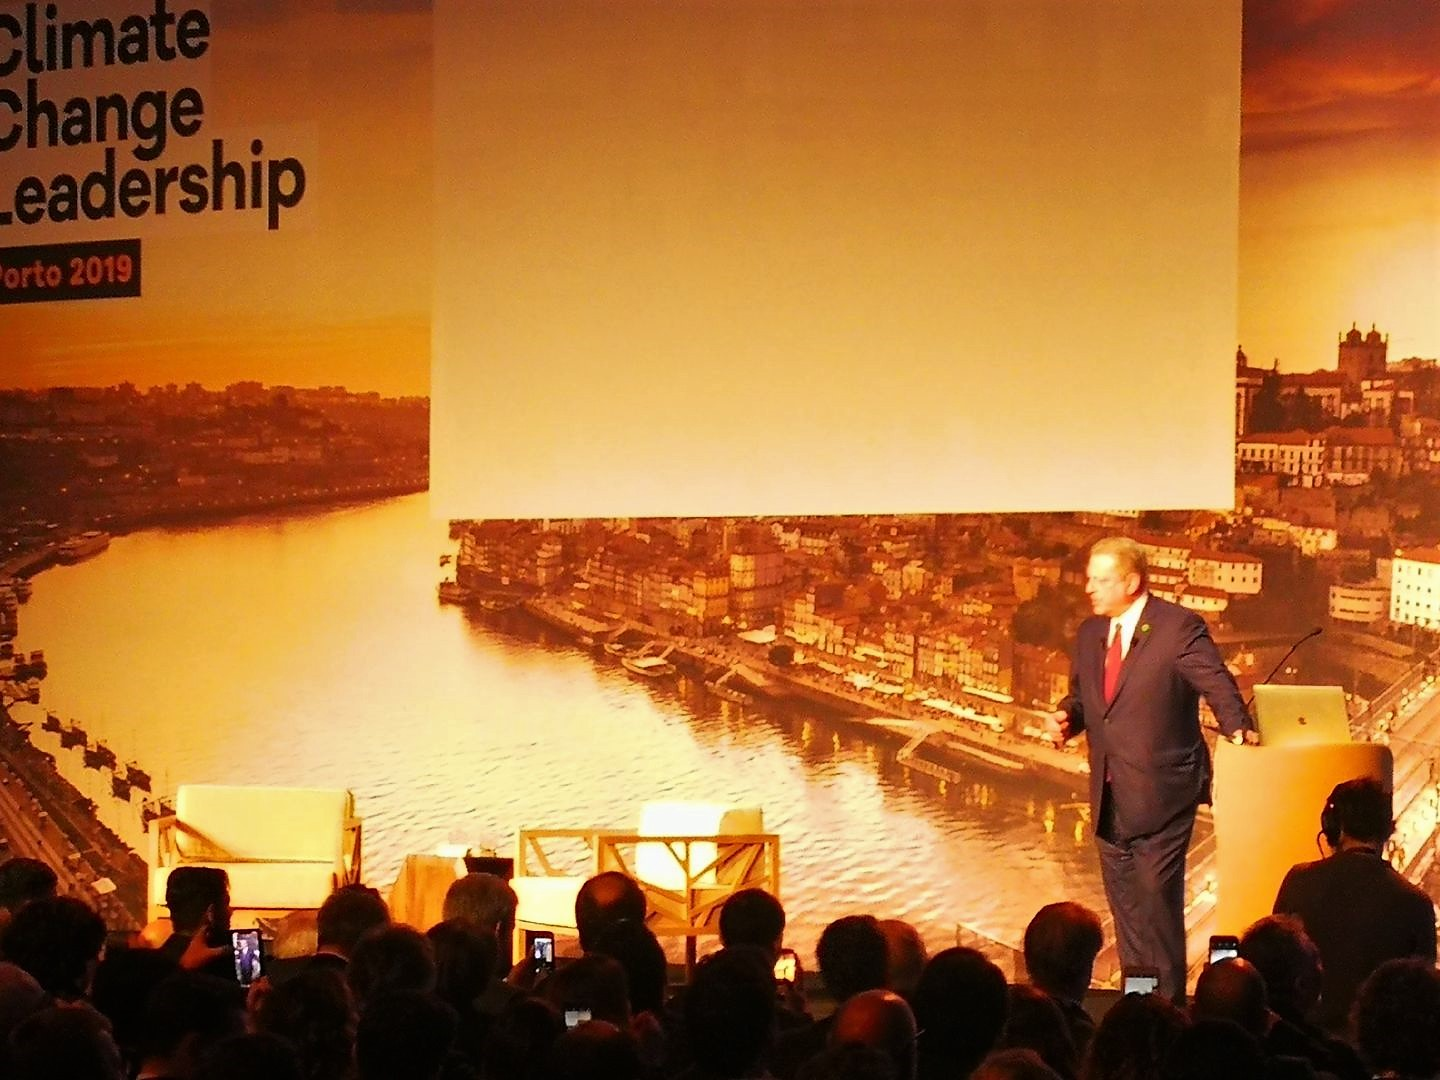 AL Gore speaks on the current global emergency at the Climate Change Leadership Conference